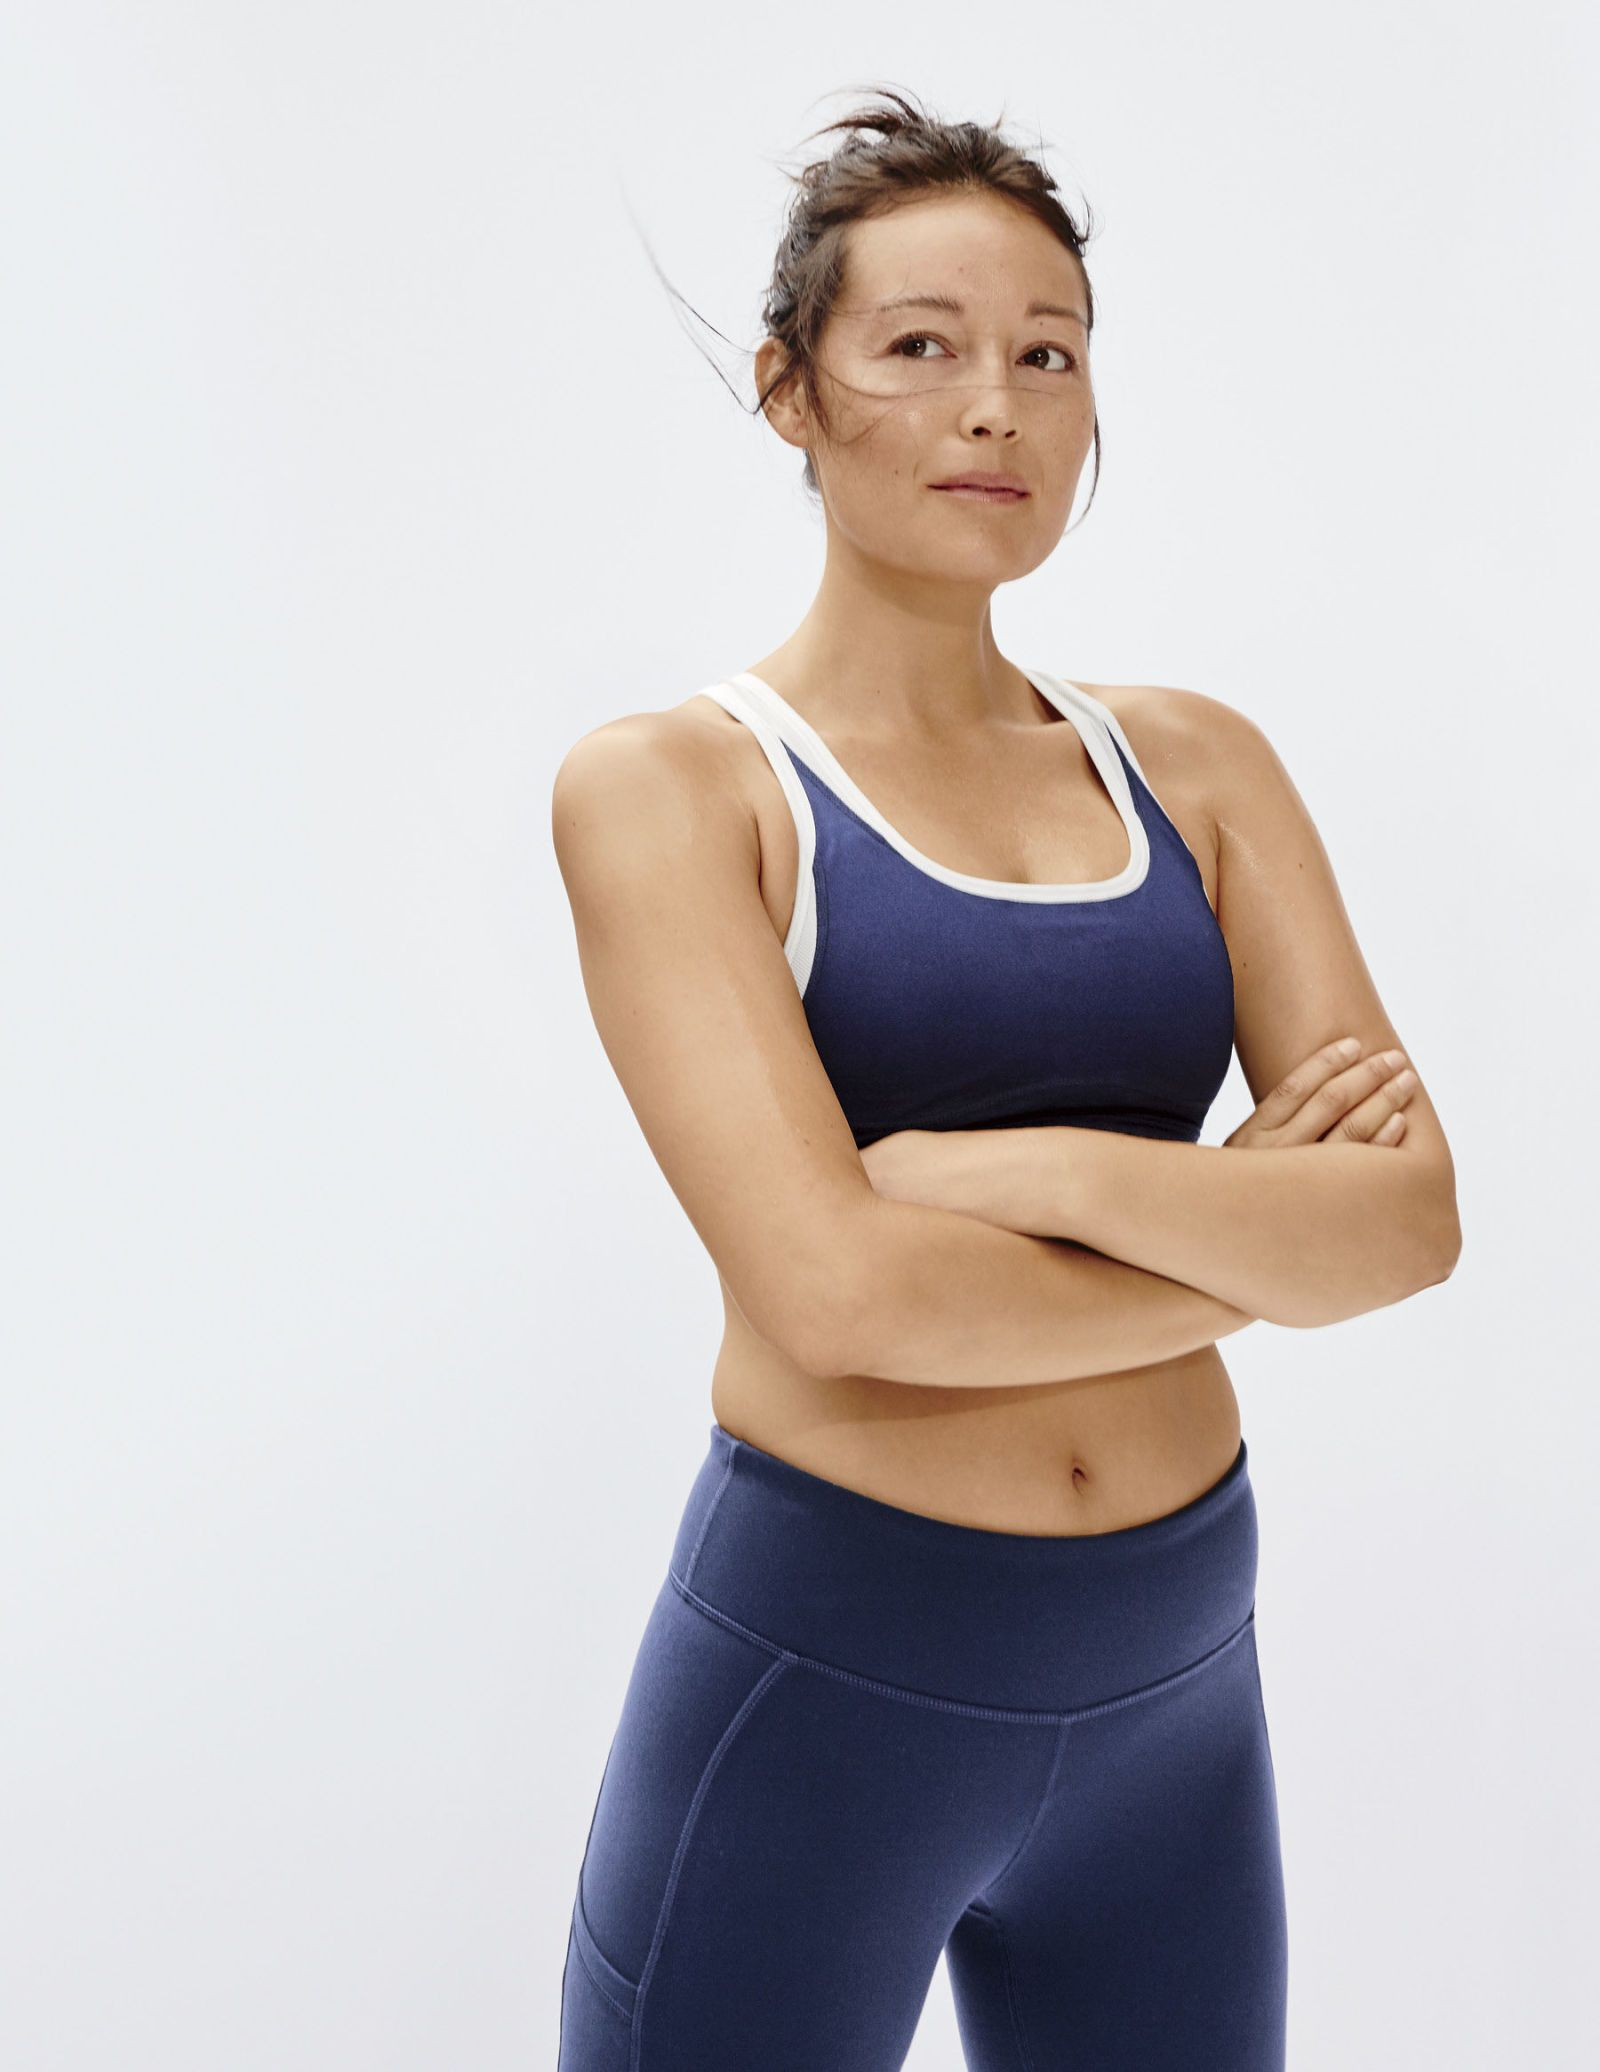 71aaf8ac831d6 J.Crew Launches Its First-Ever Activewear Line with New Balance ...